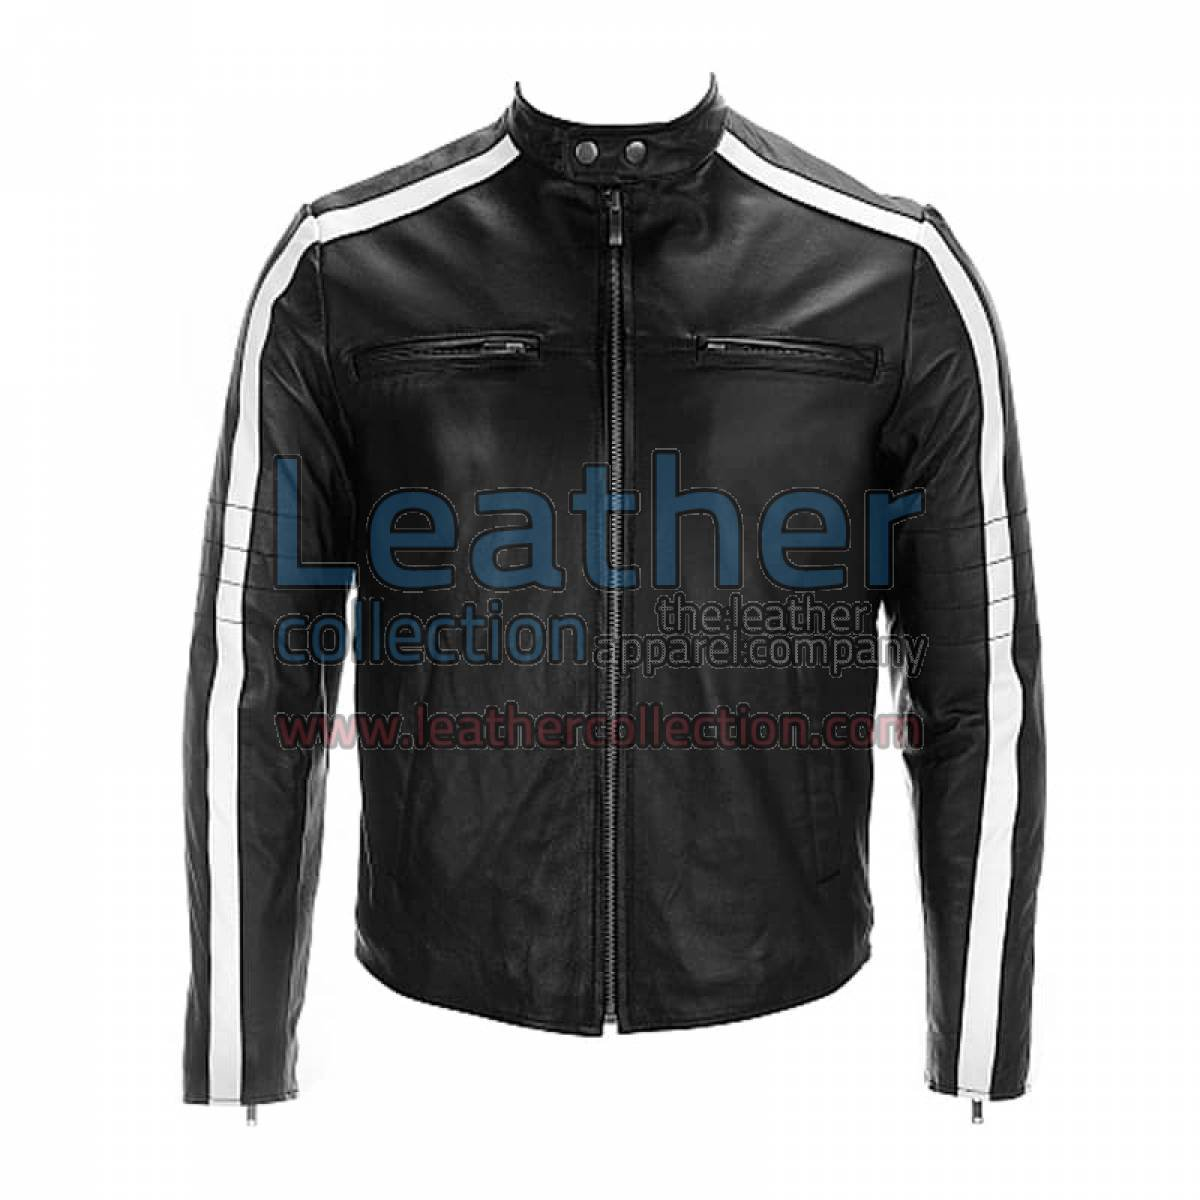 Semi Moto Leather Jacket With Stripes on Sleeves